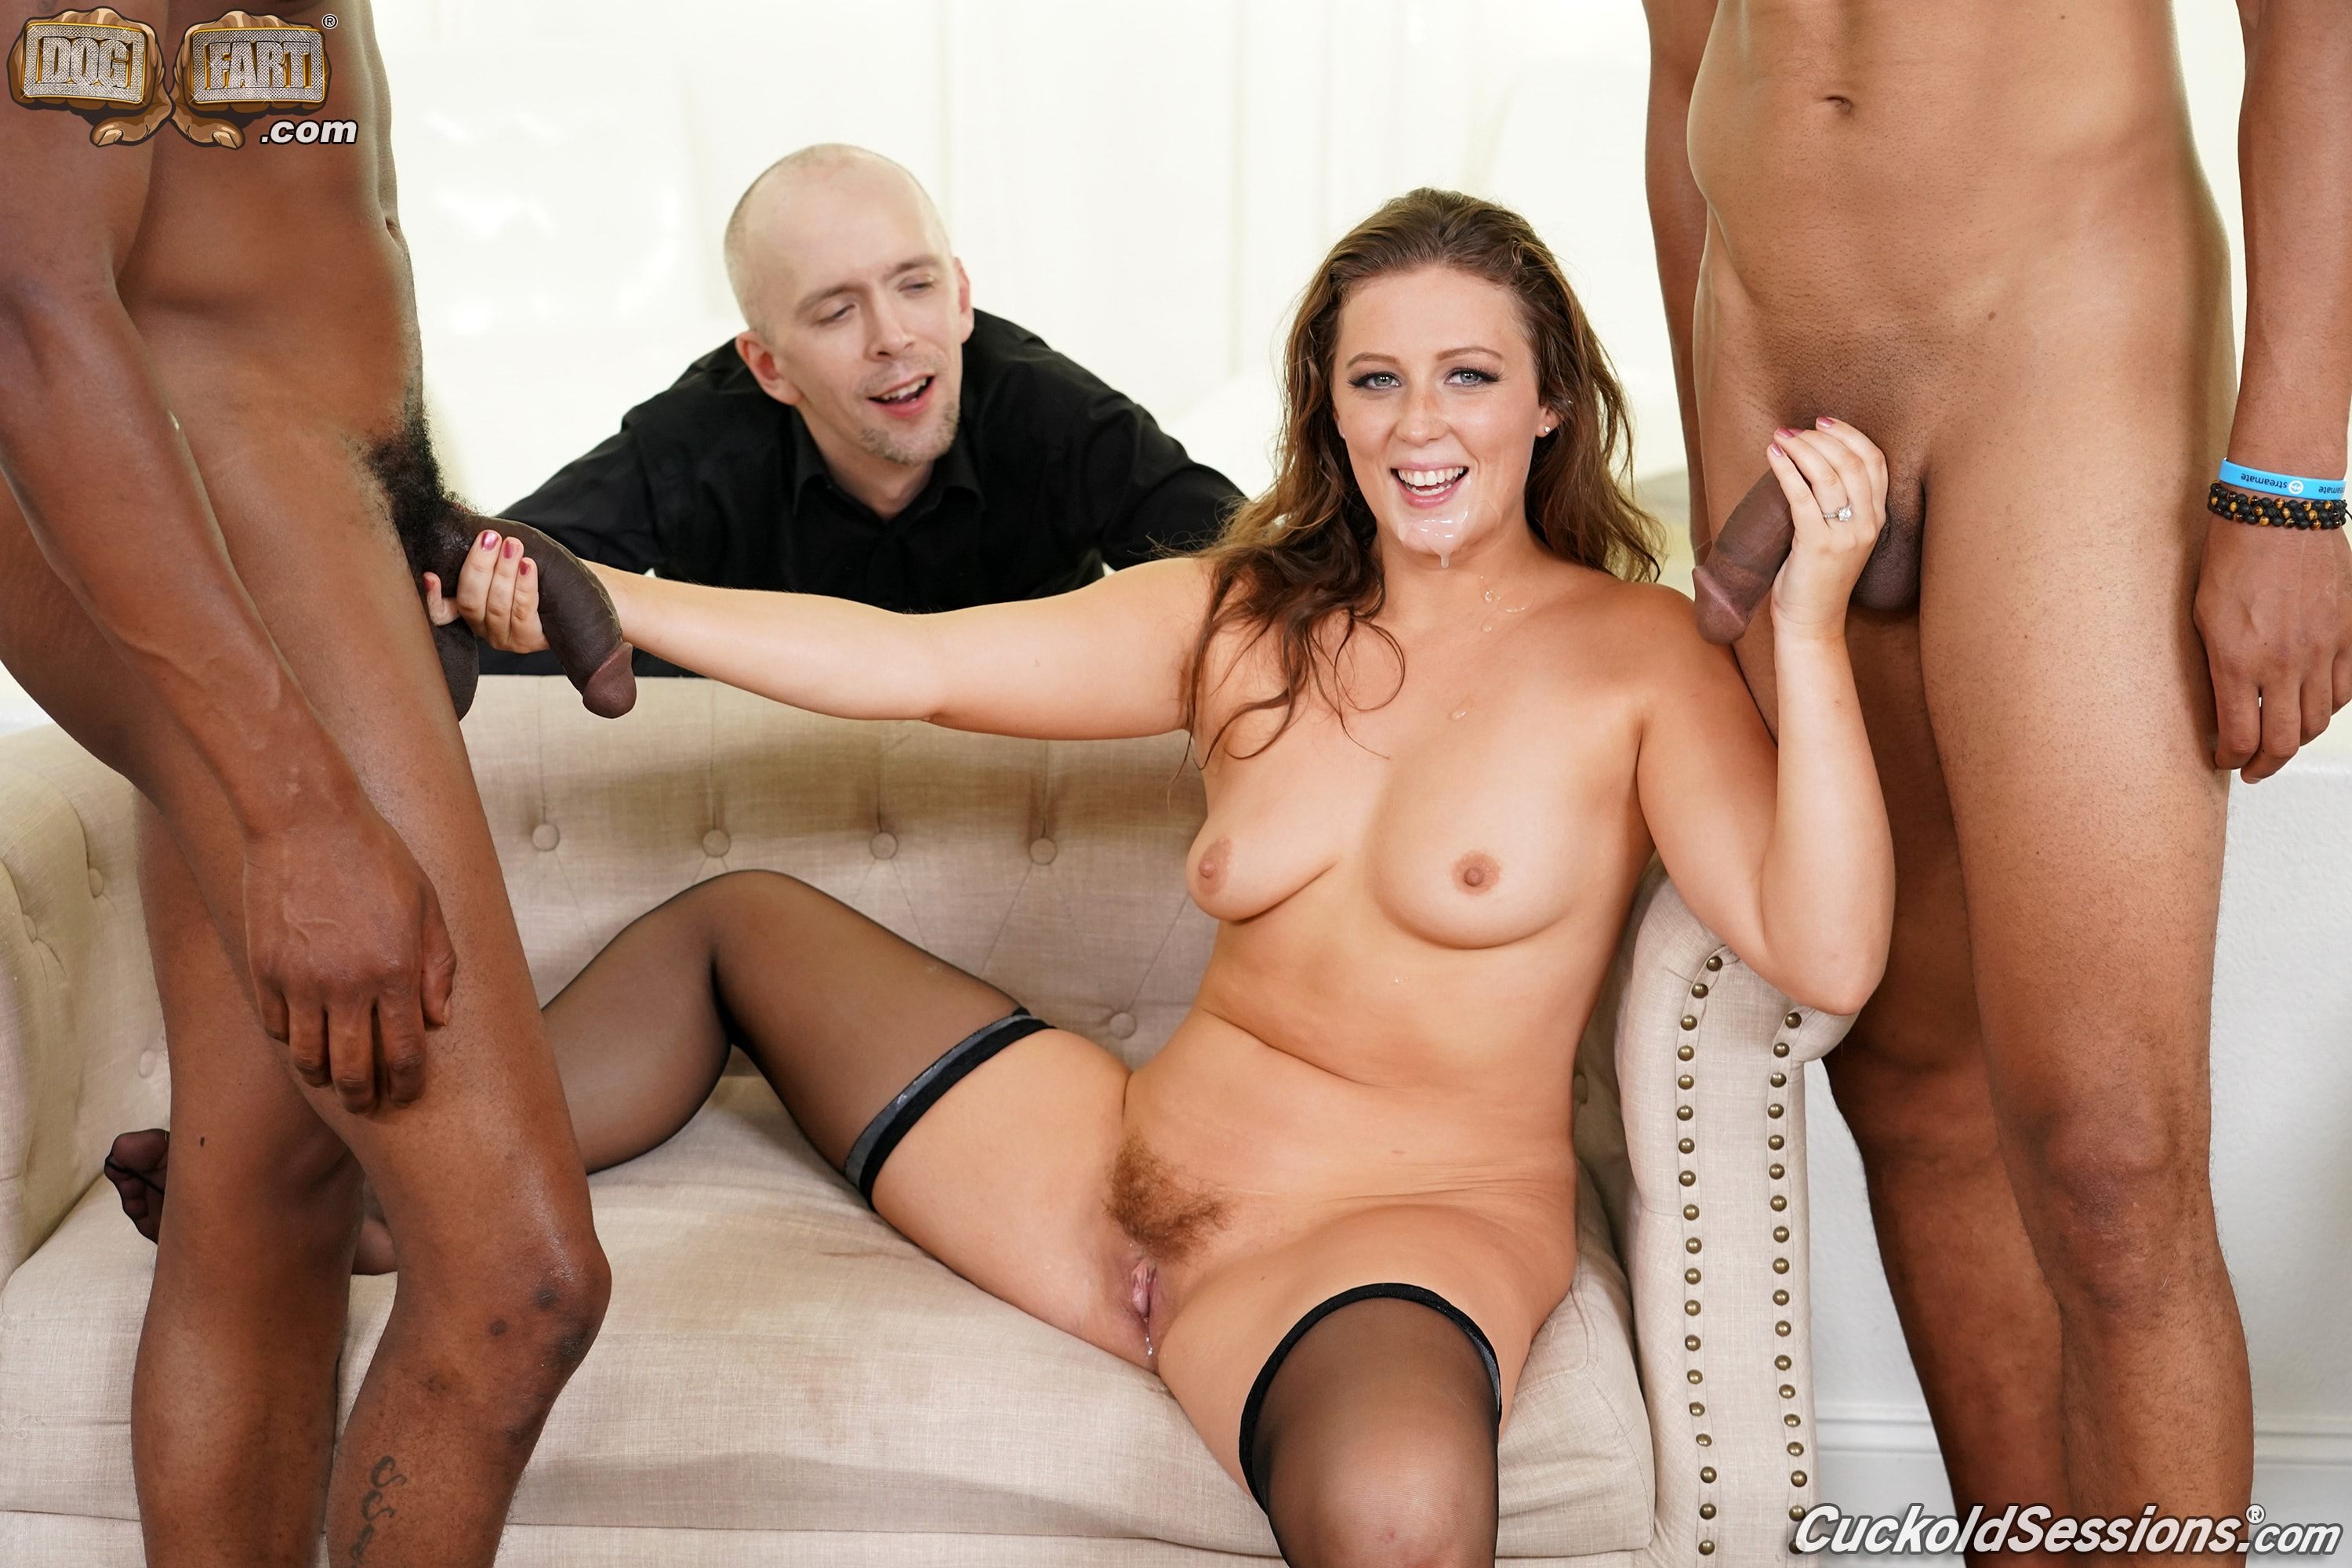 Dogfart '- Cuckold Sessions' starring Febby Twigs (Photo 30)